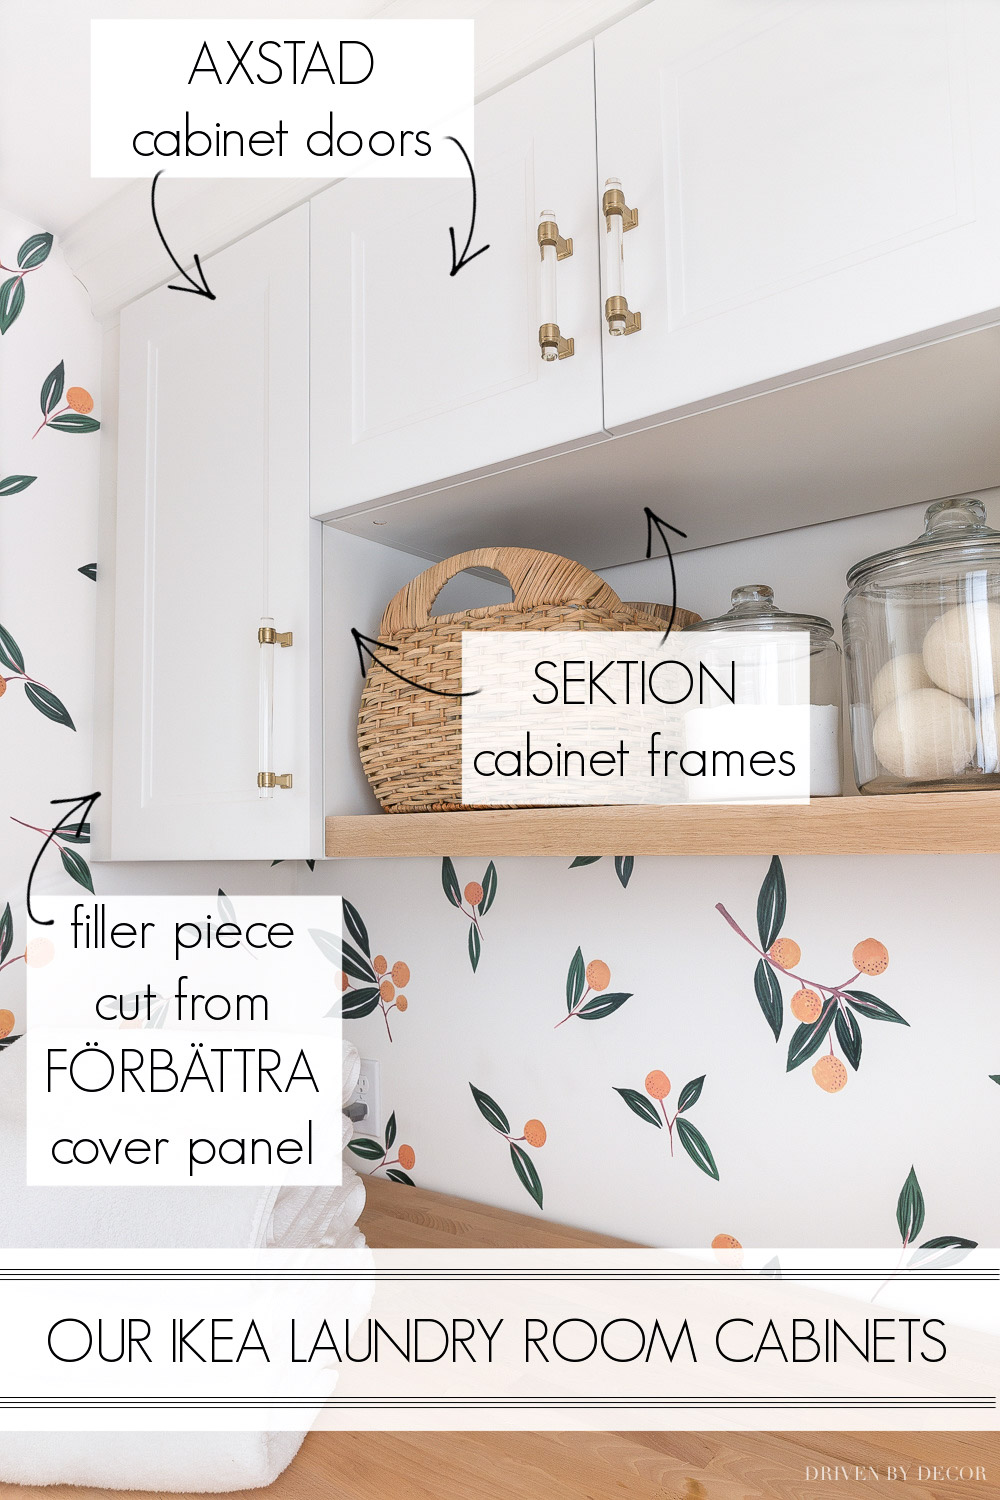 The Ikea products we used for laundry room storage! A great inexpensive solution!